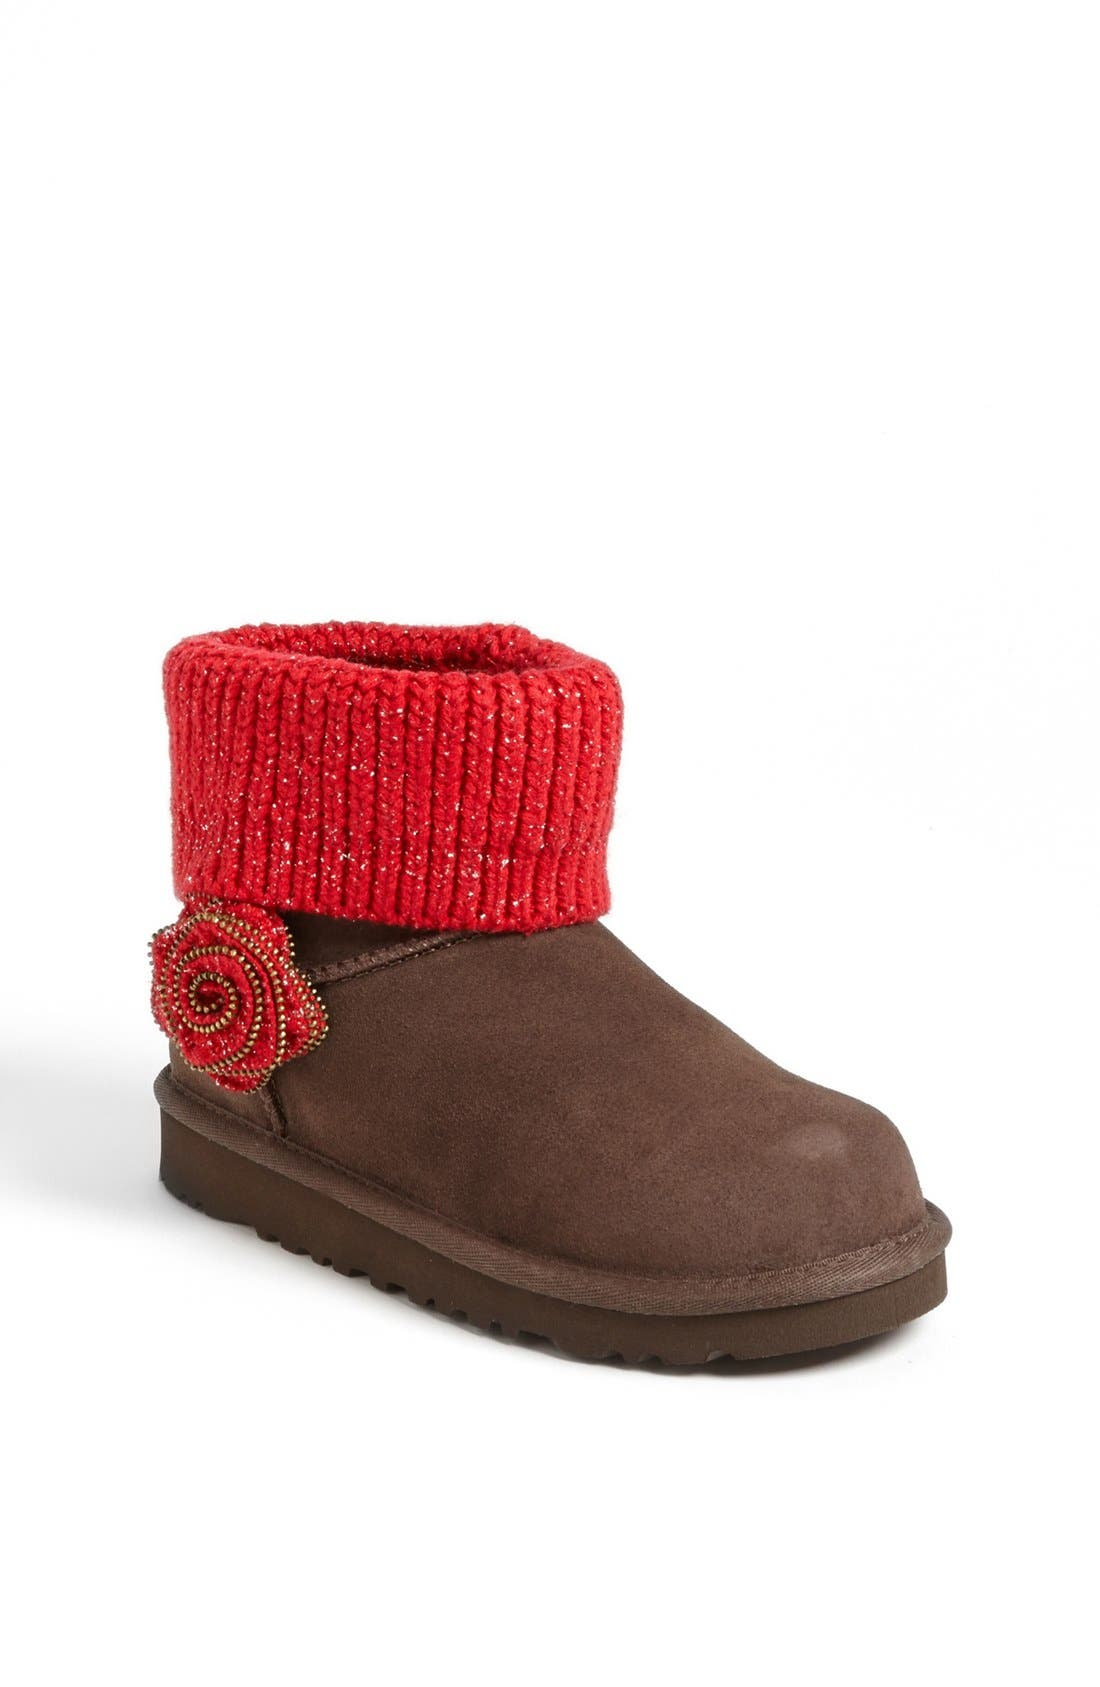 Australia 'Southern Belle' Boot,                         Main,                         color, Chocolate